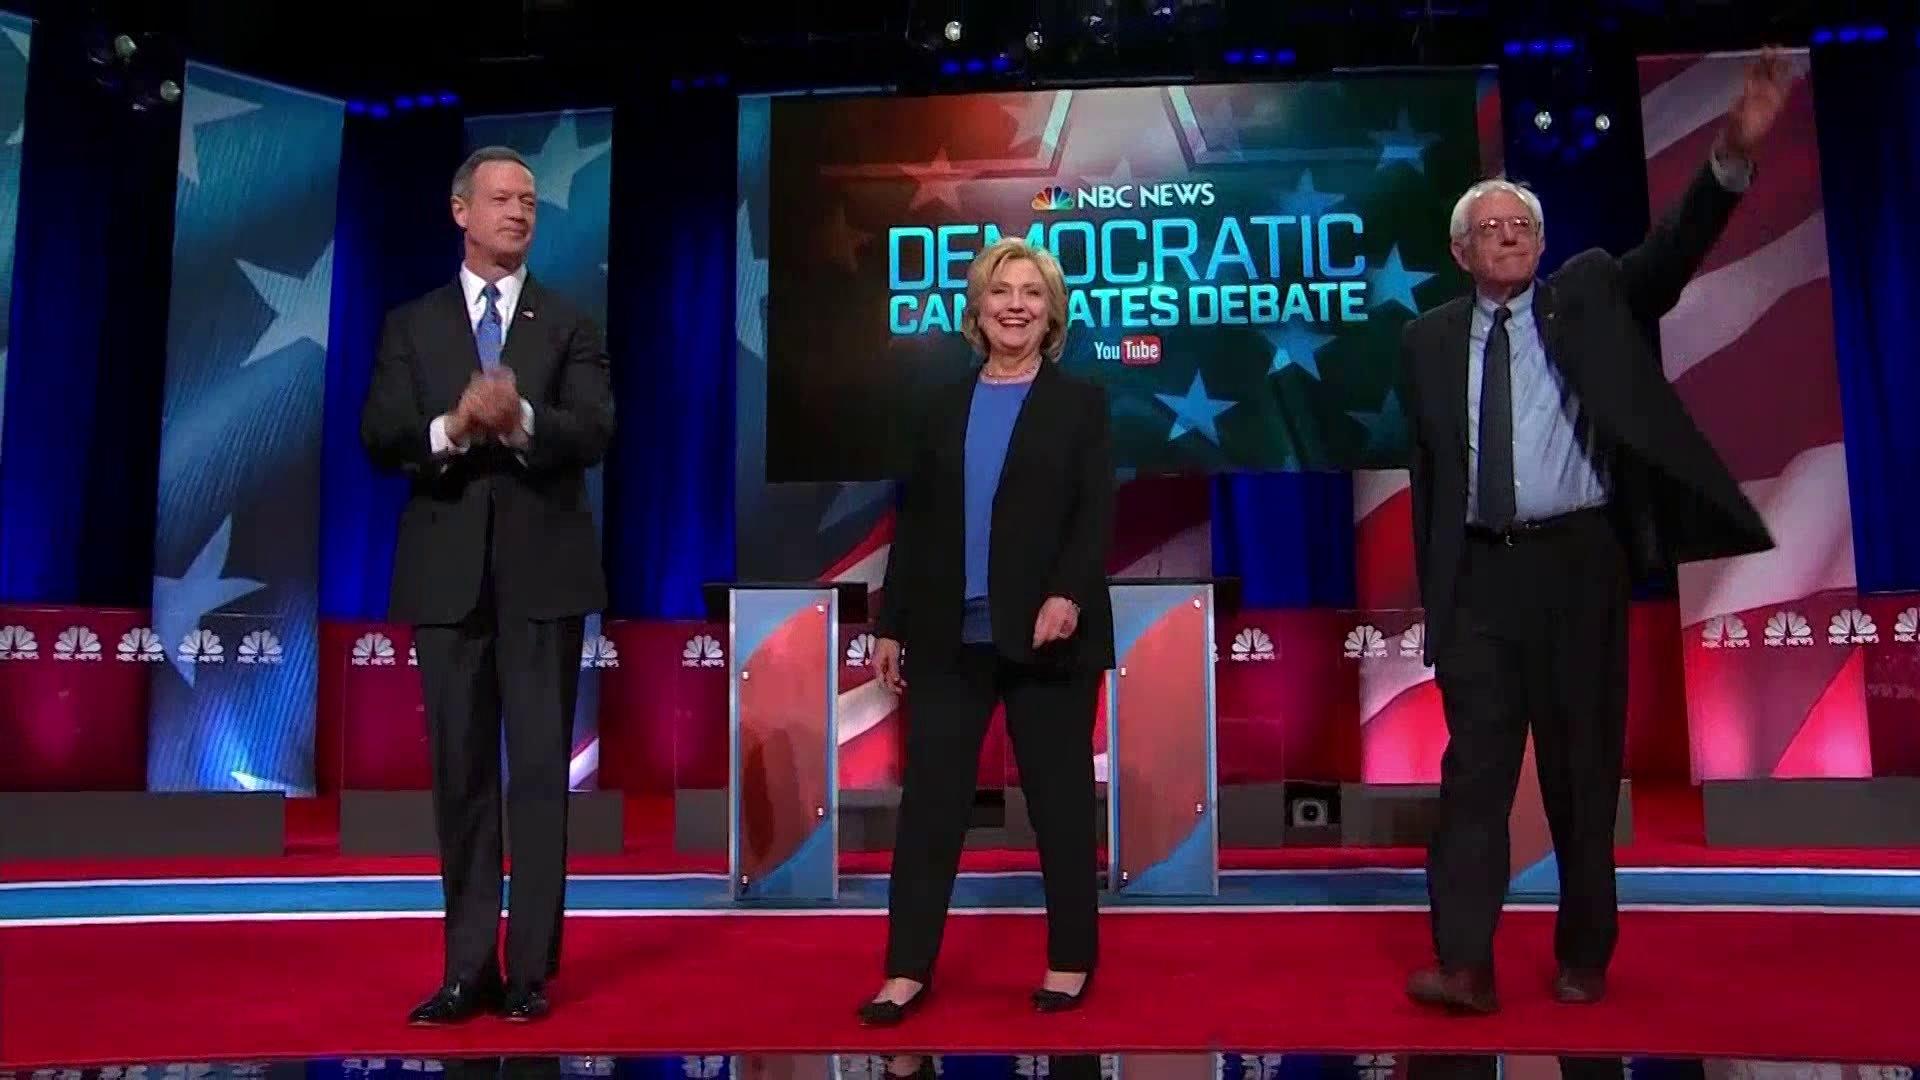 Democratic debate hosted by NBC (NBC)